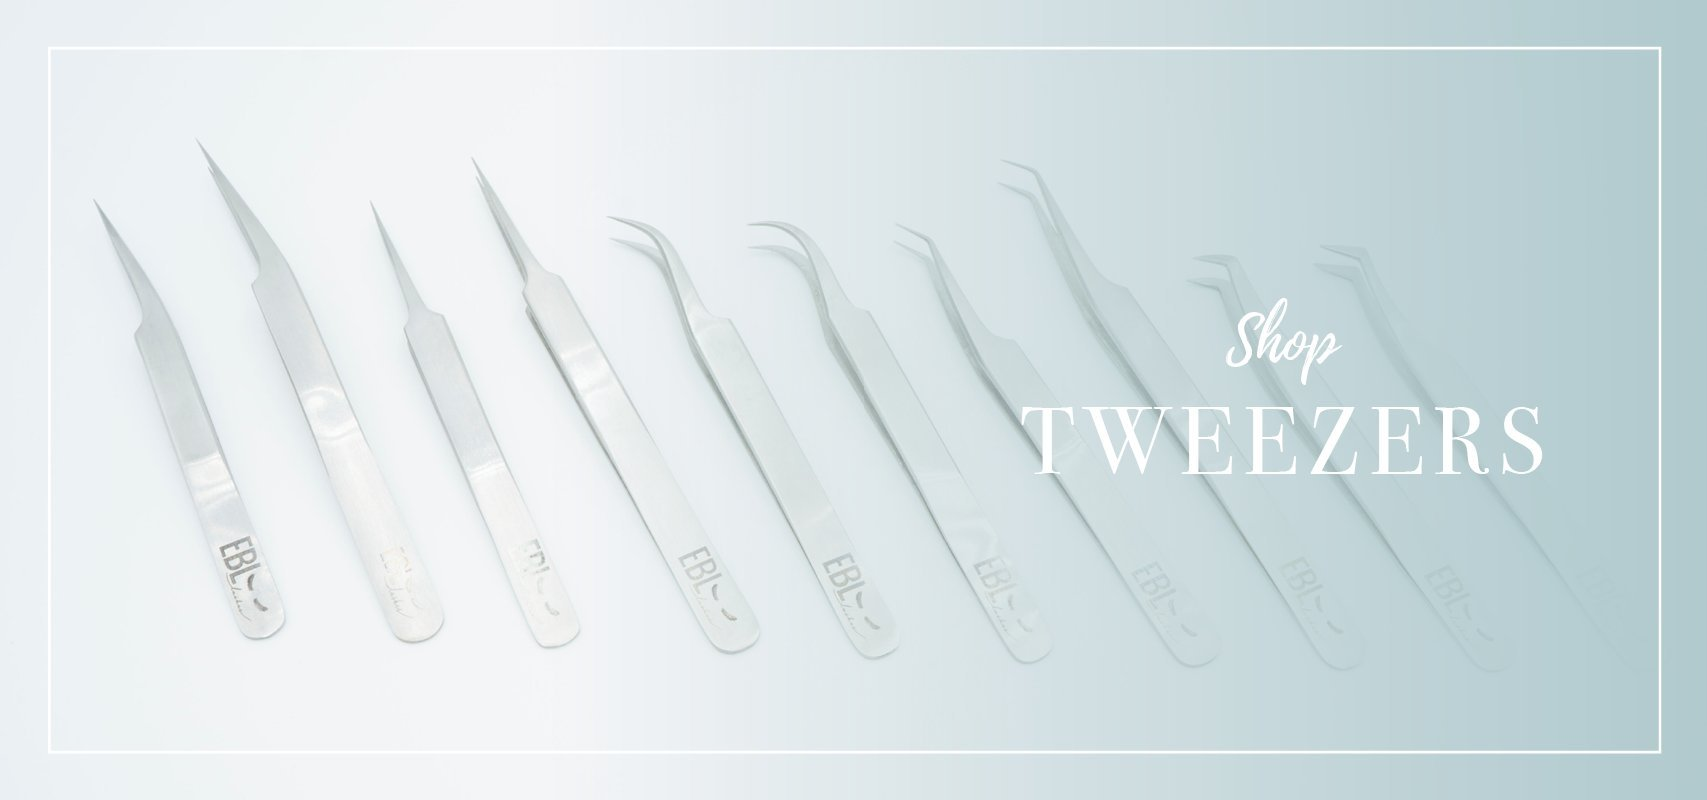 8 all new tweezers for eyelash extensions